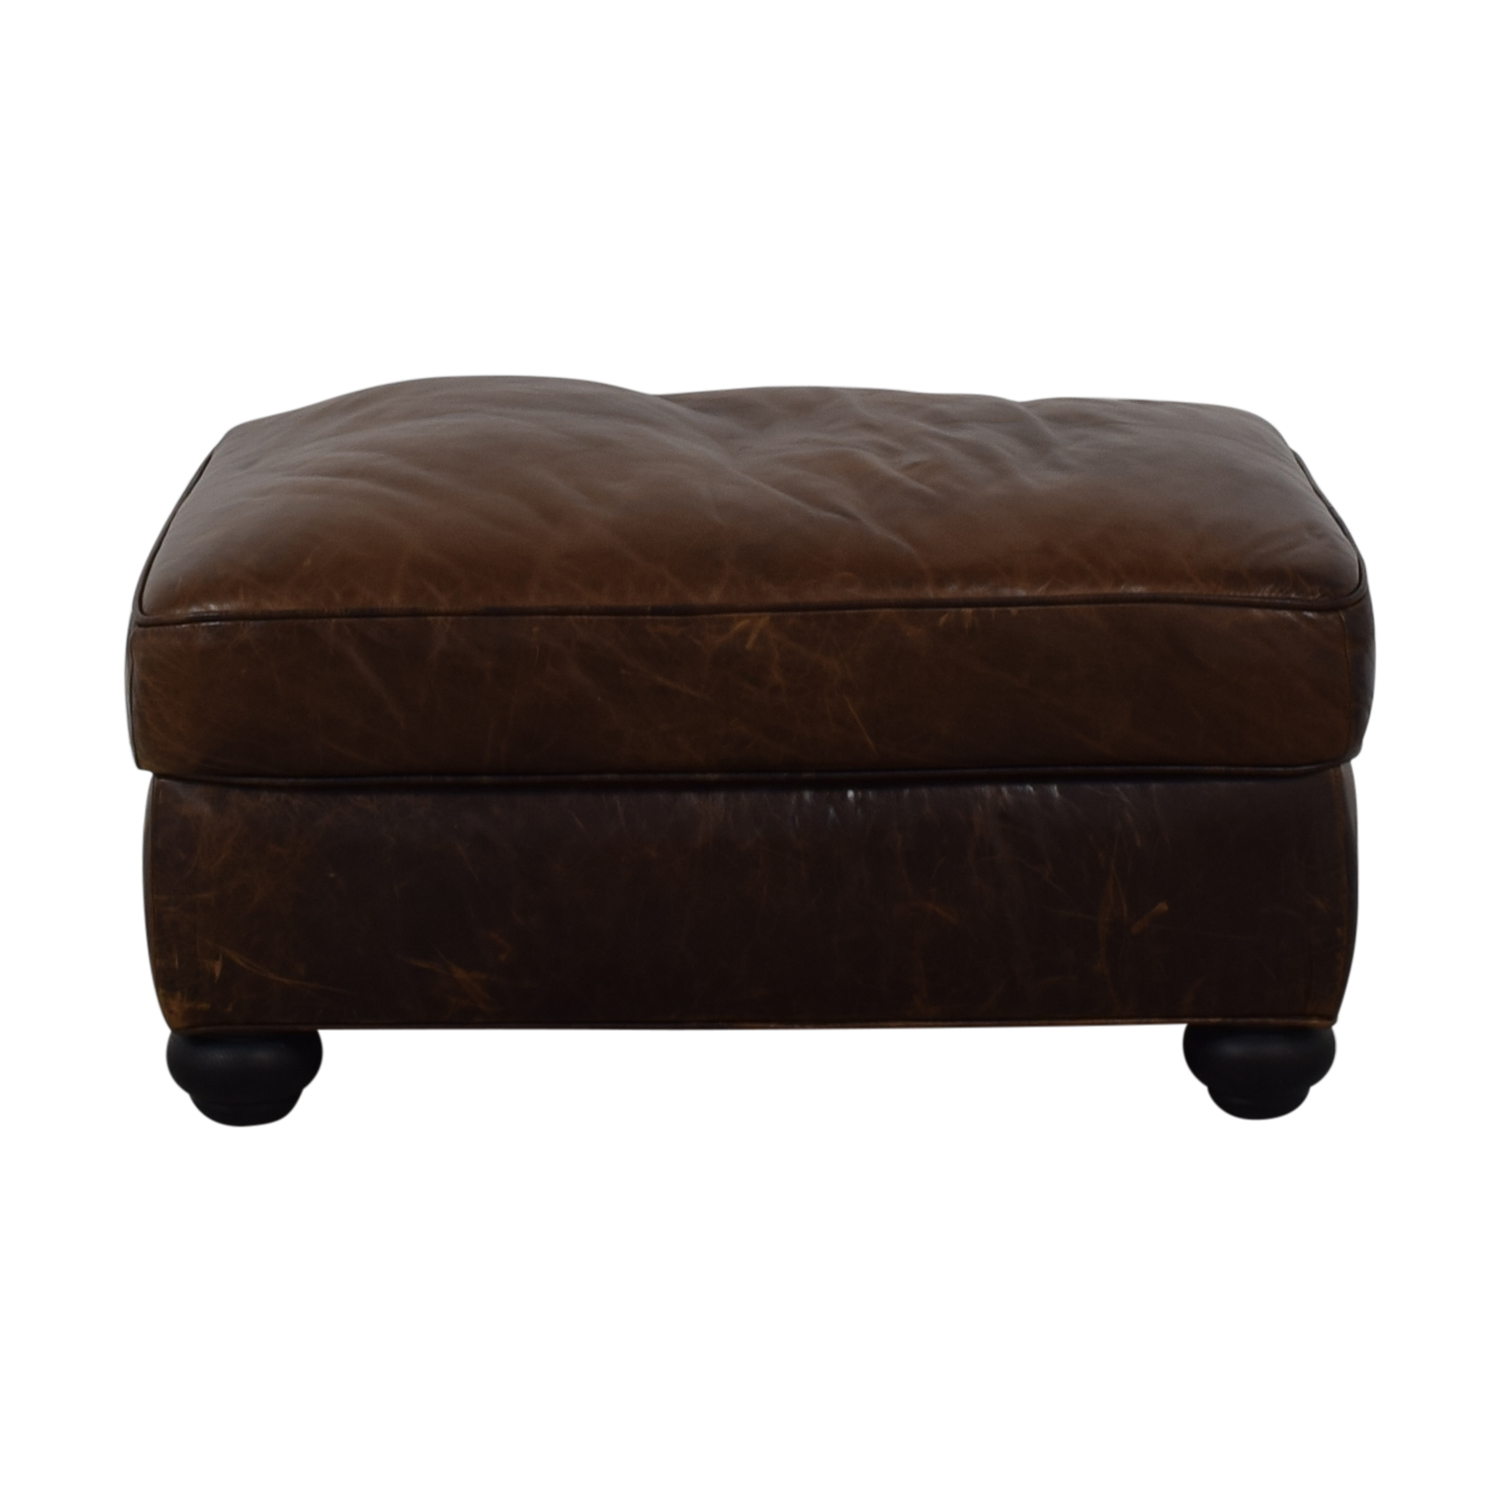 Restoration Hardware Restoration Hardware Lancaster Leather Ottoman second hand